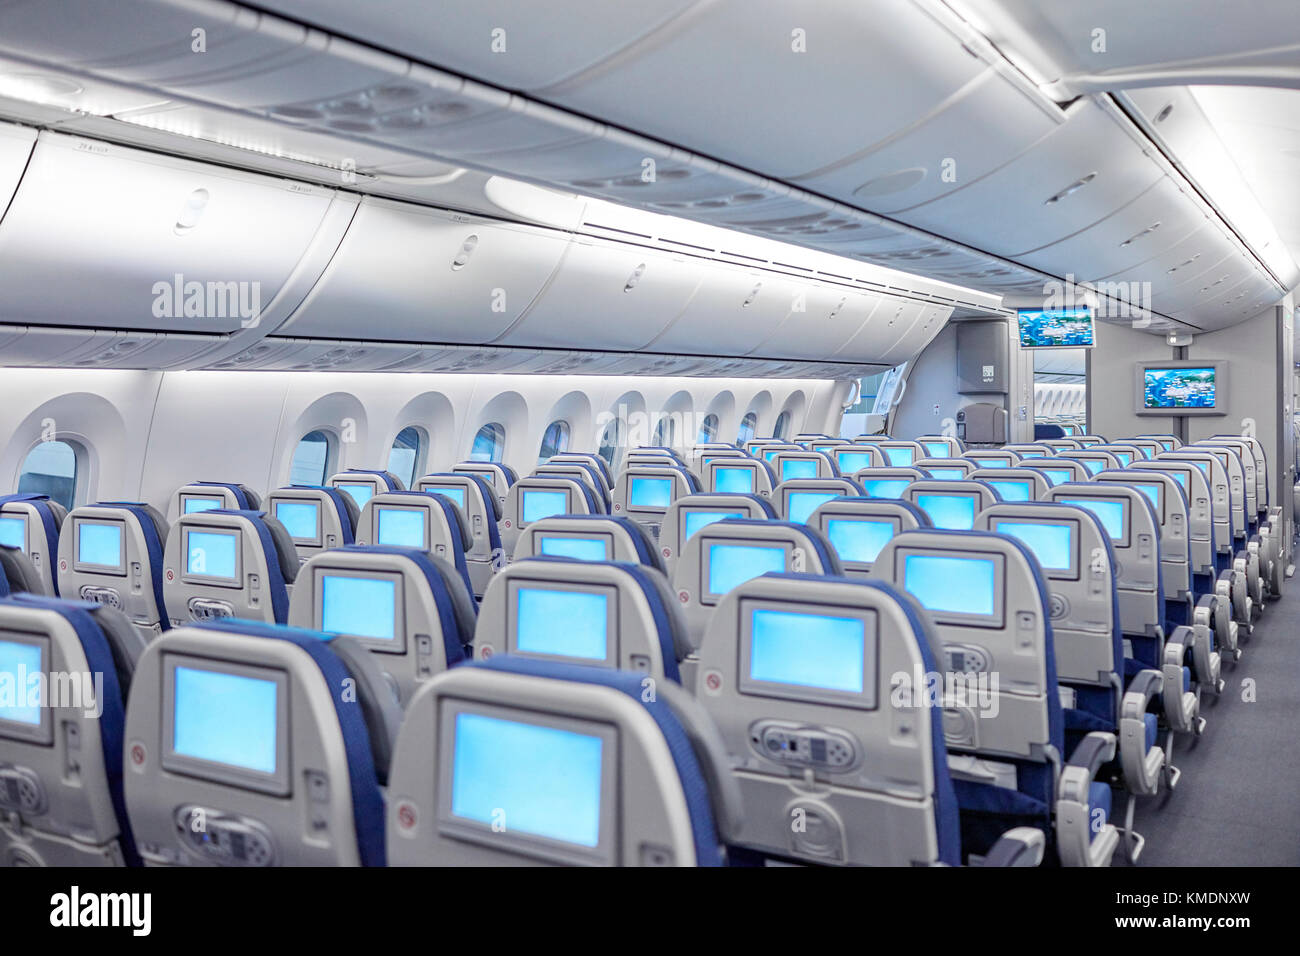 Rows of seats with entertainment screens on airplane - Stock Image